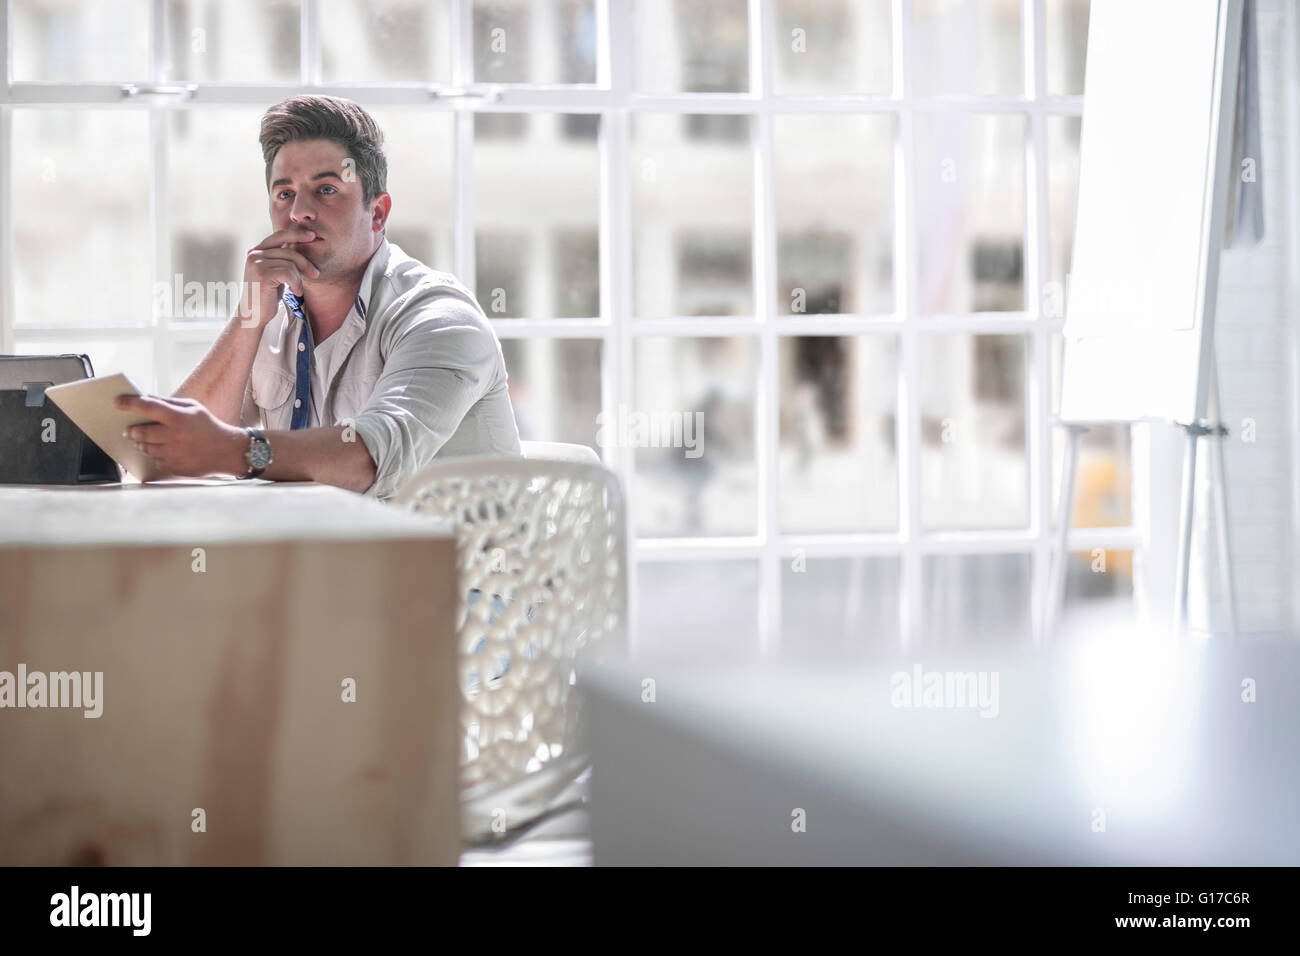 Businessman contemplating in office - Stock Image